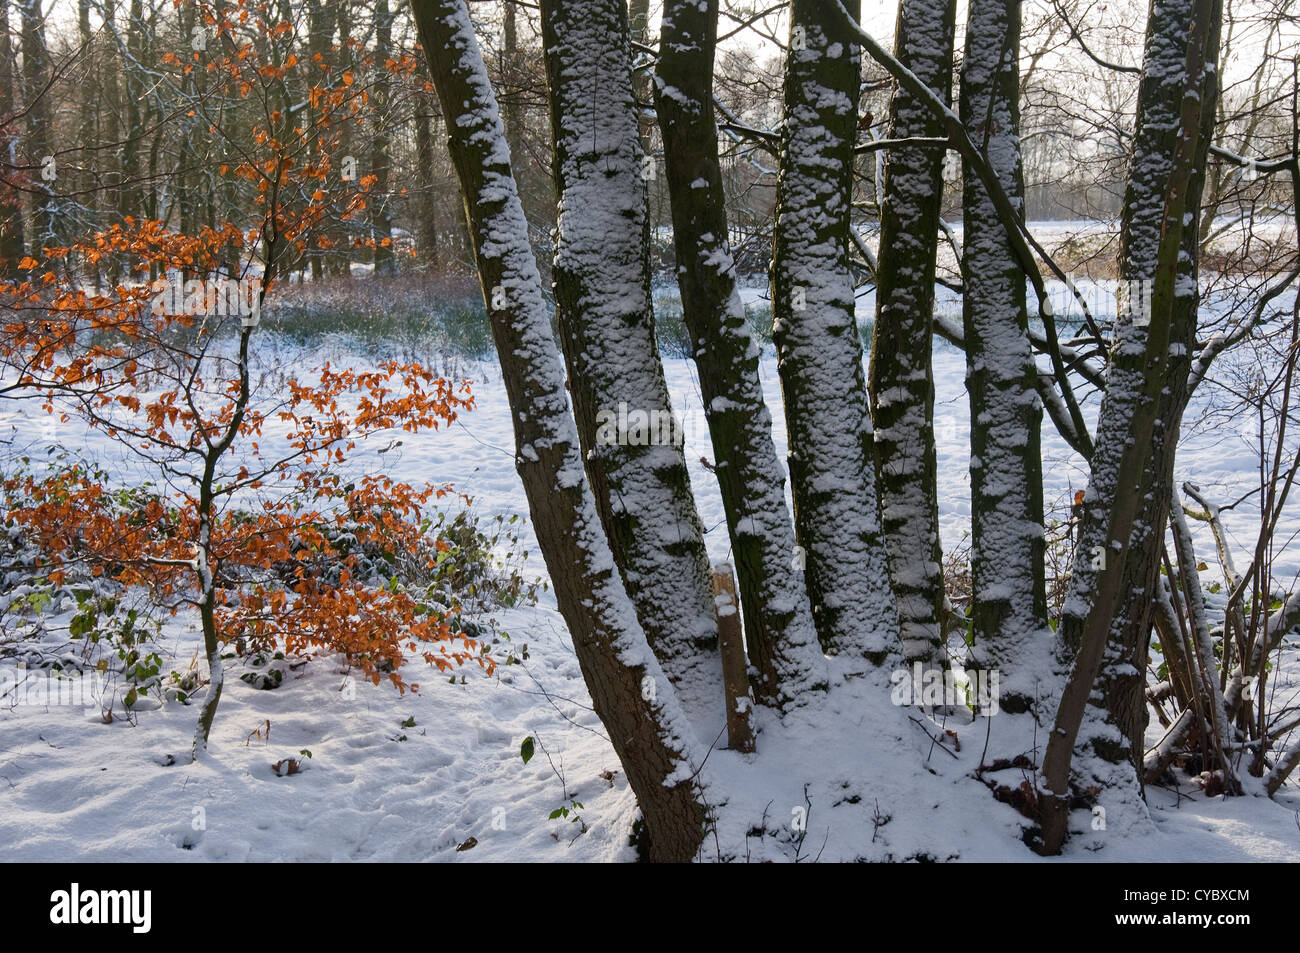 Snow-covered tree trunks - Stock Image